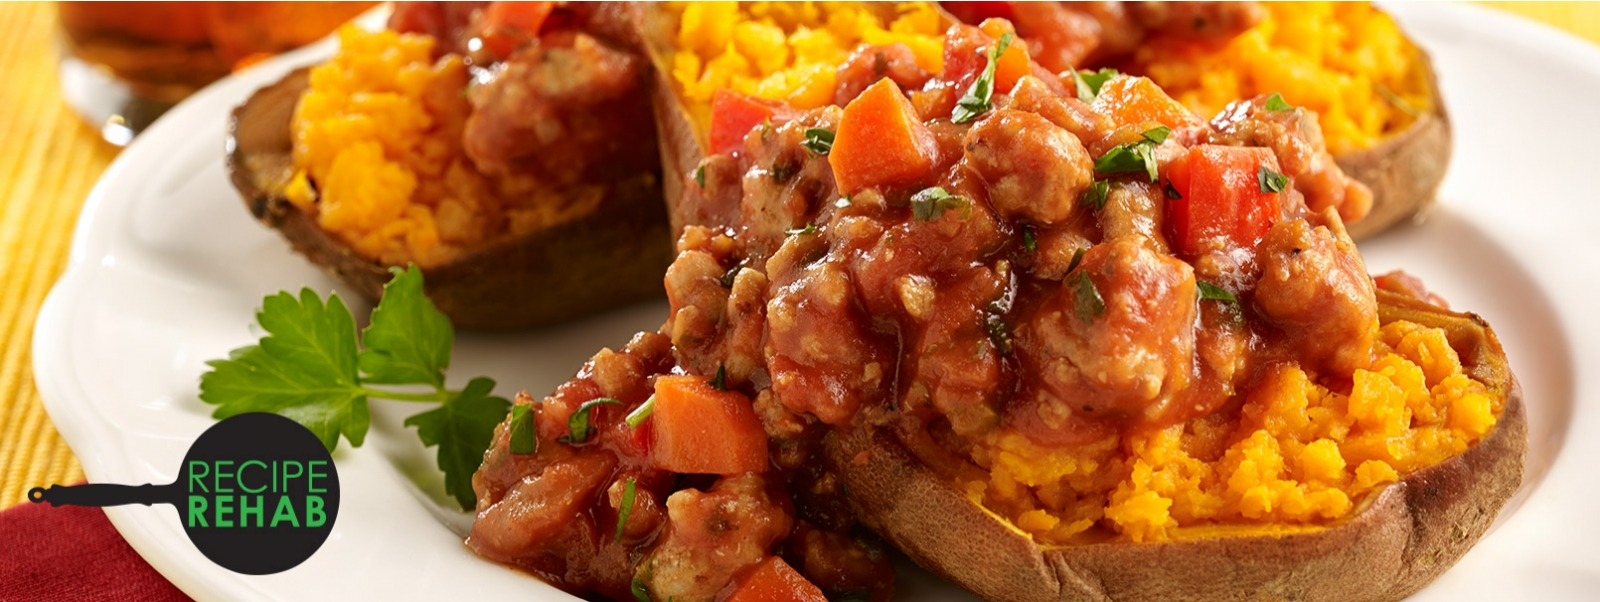 Recipe Rehab™ Turkey & Salsa Sloppy Joe's